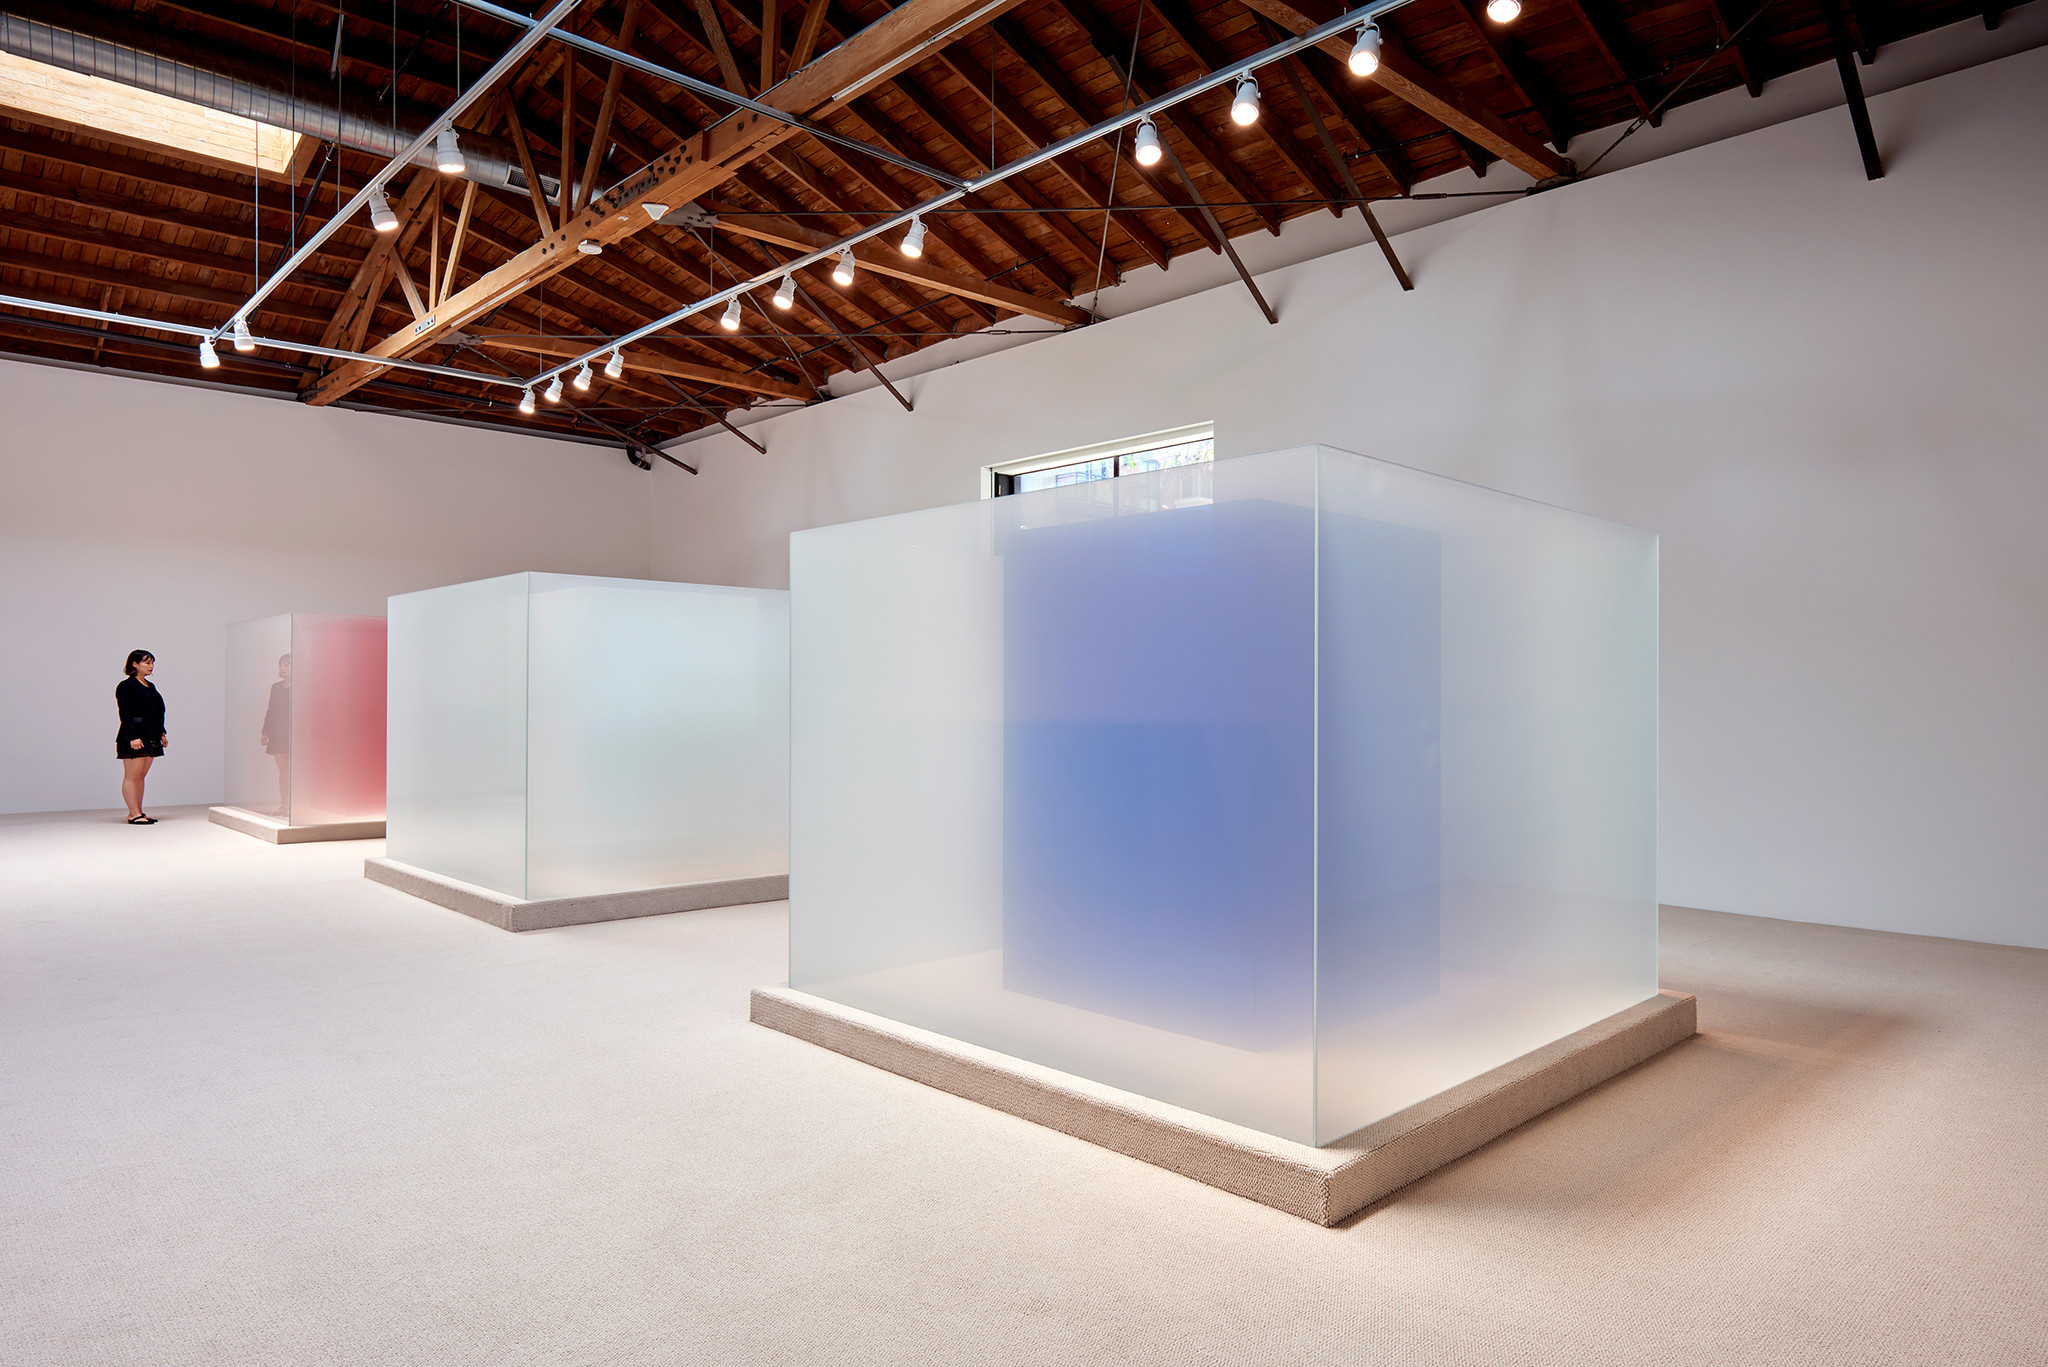 Larry Bell at Hauser & Wirth